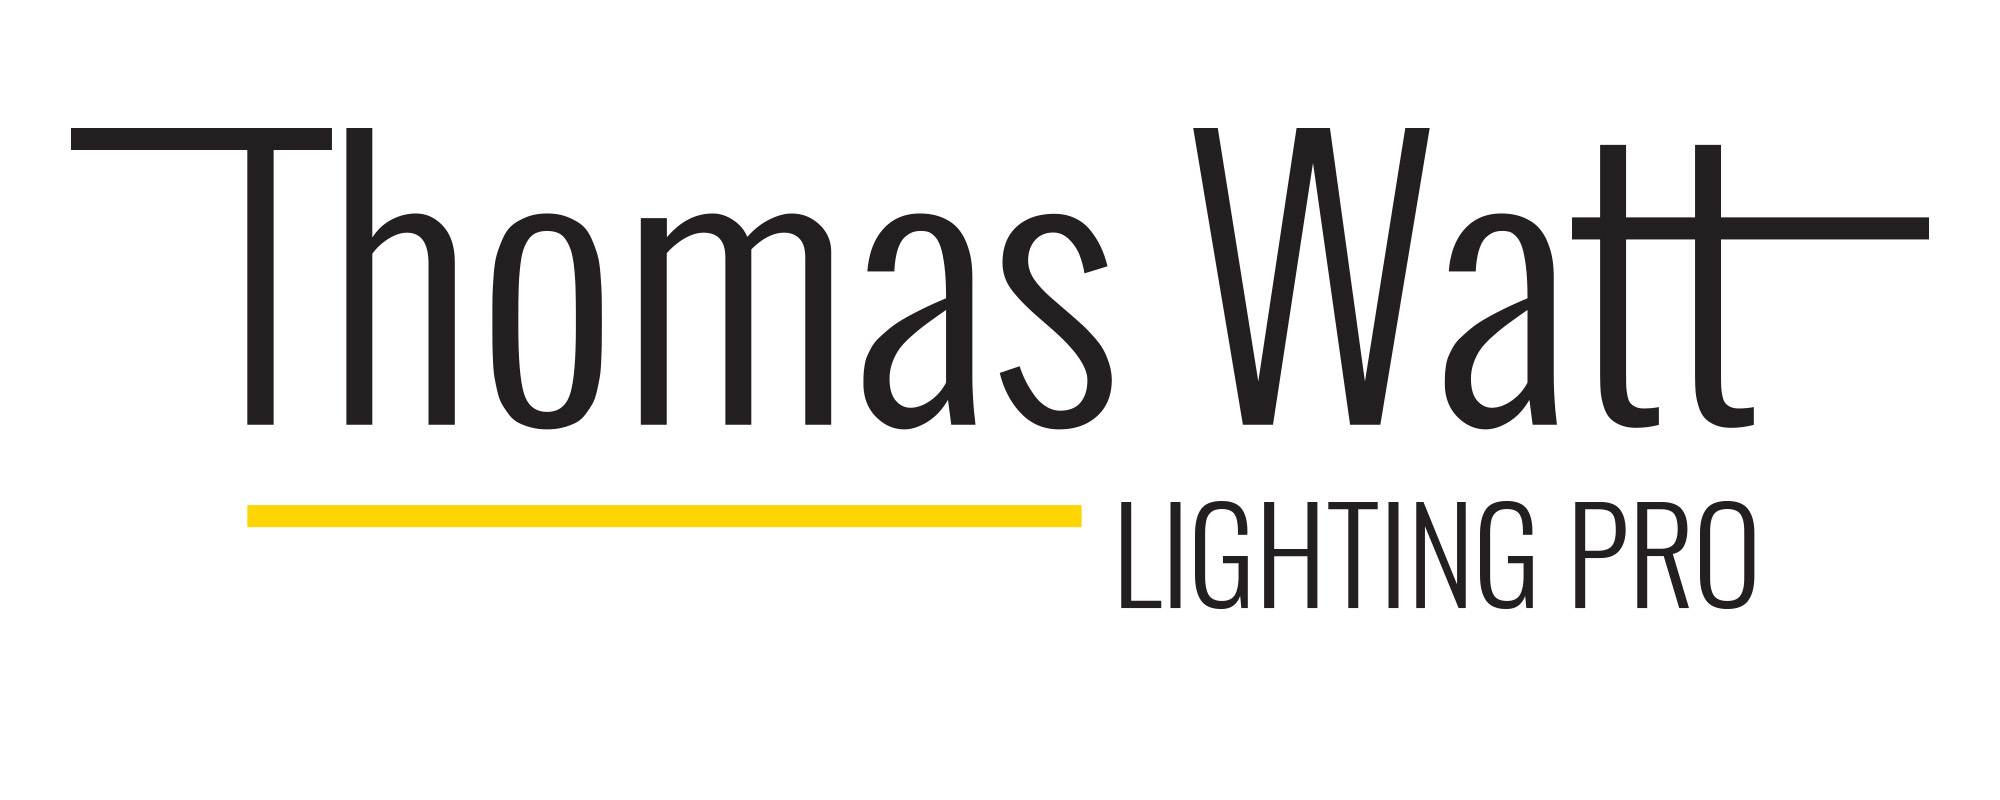 Thomas Watt Lighting Pro